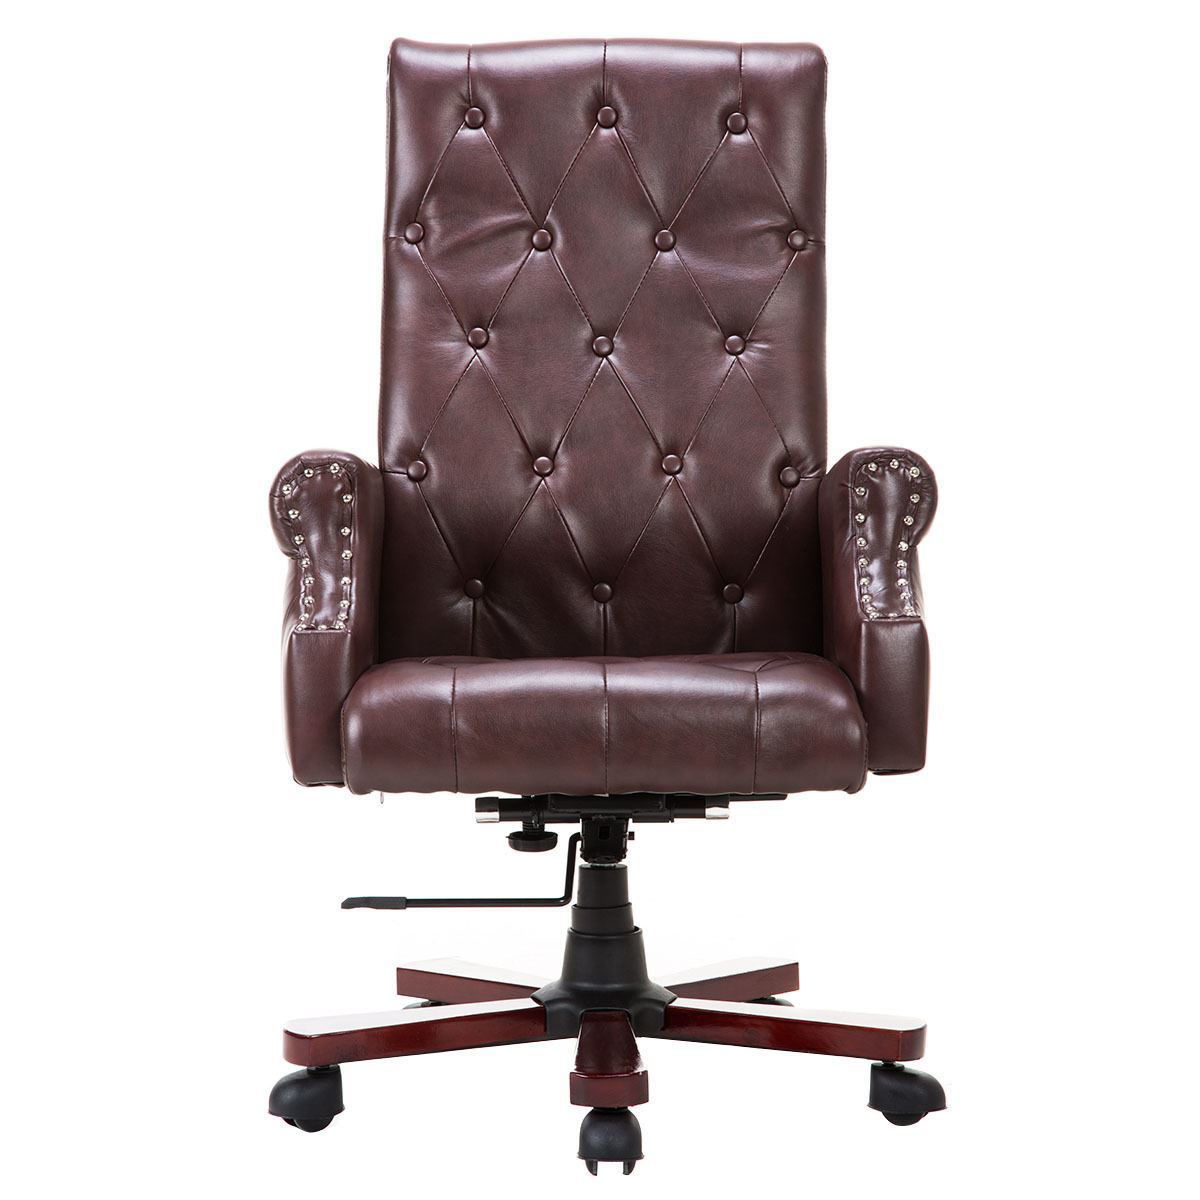 Picture of Desk Office Chair Modern High Deluxe PU Leather Accent Chair